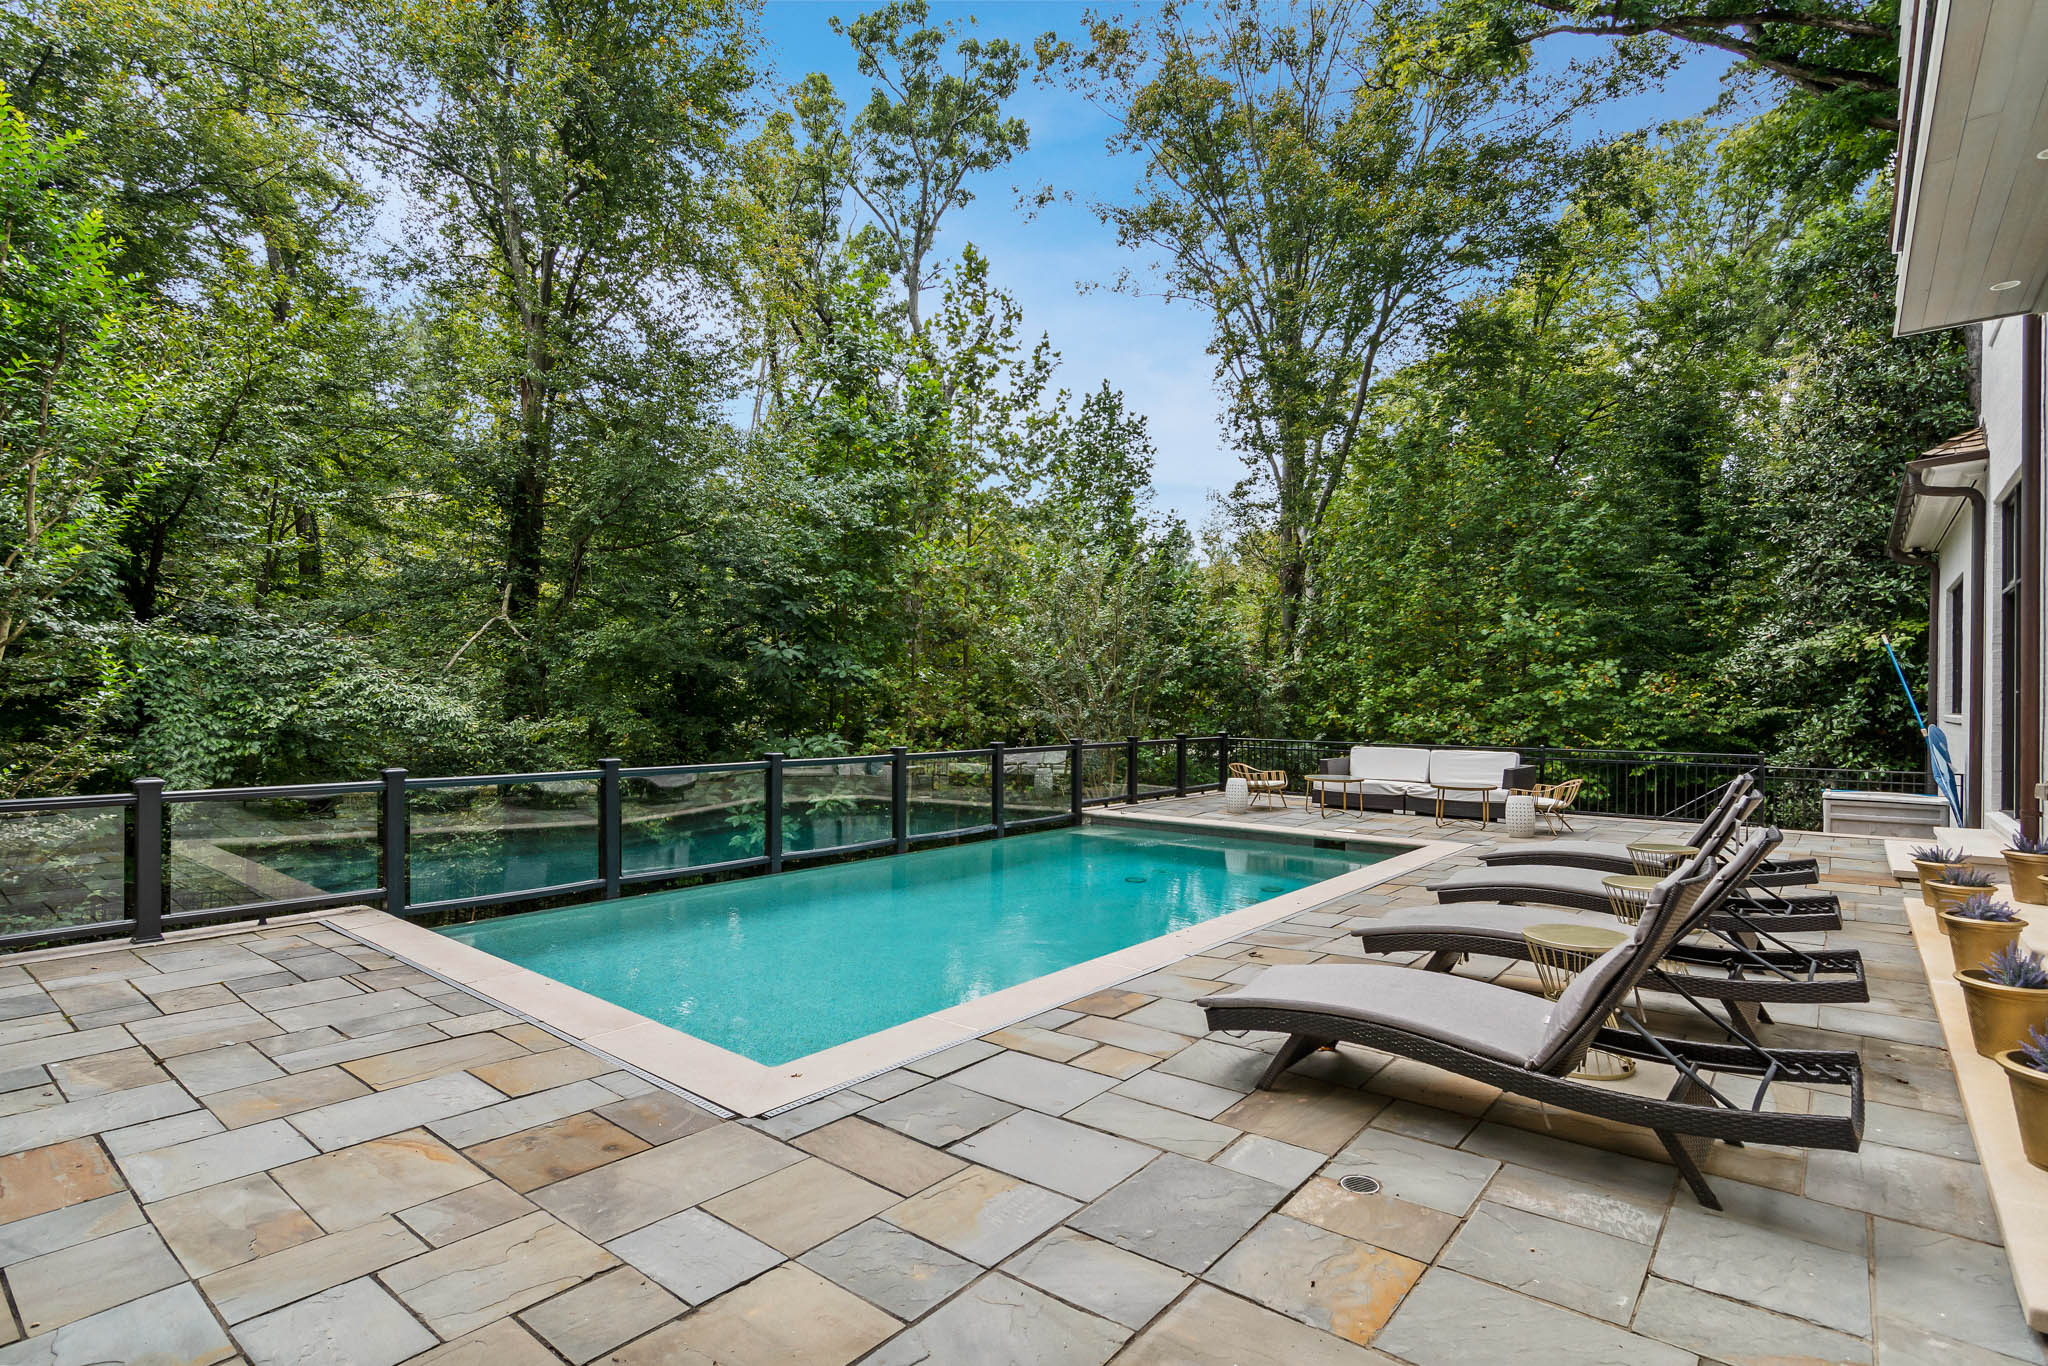 real_estate_photographer_residential_photography-12.jpg